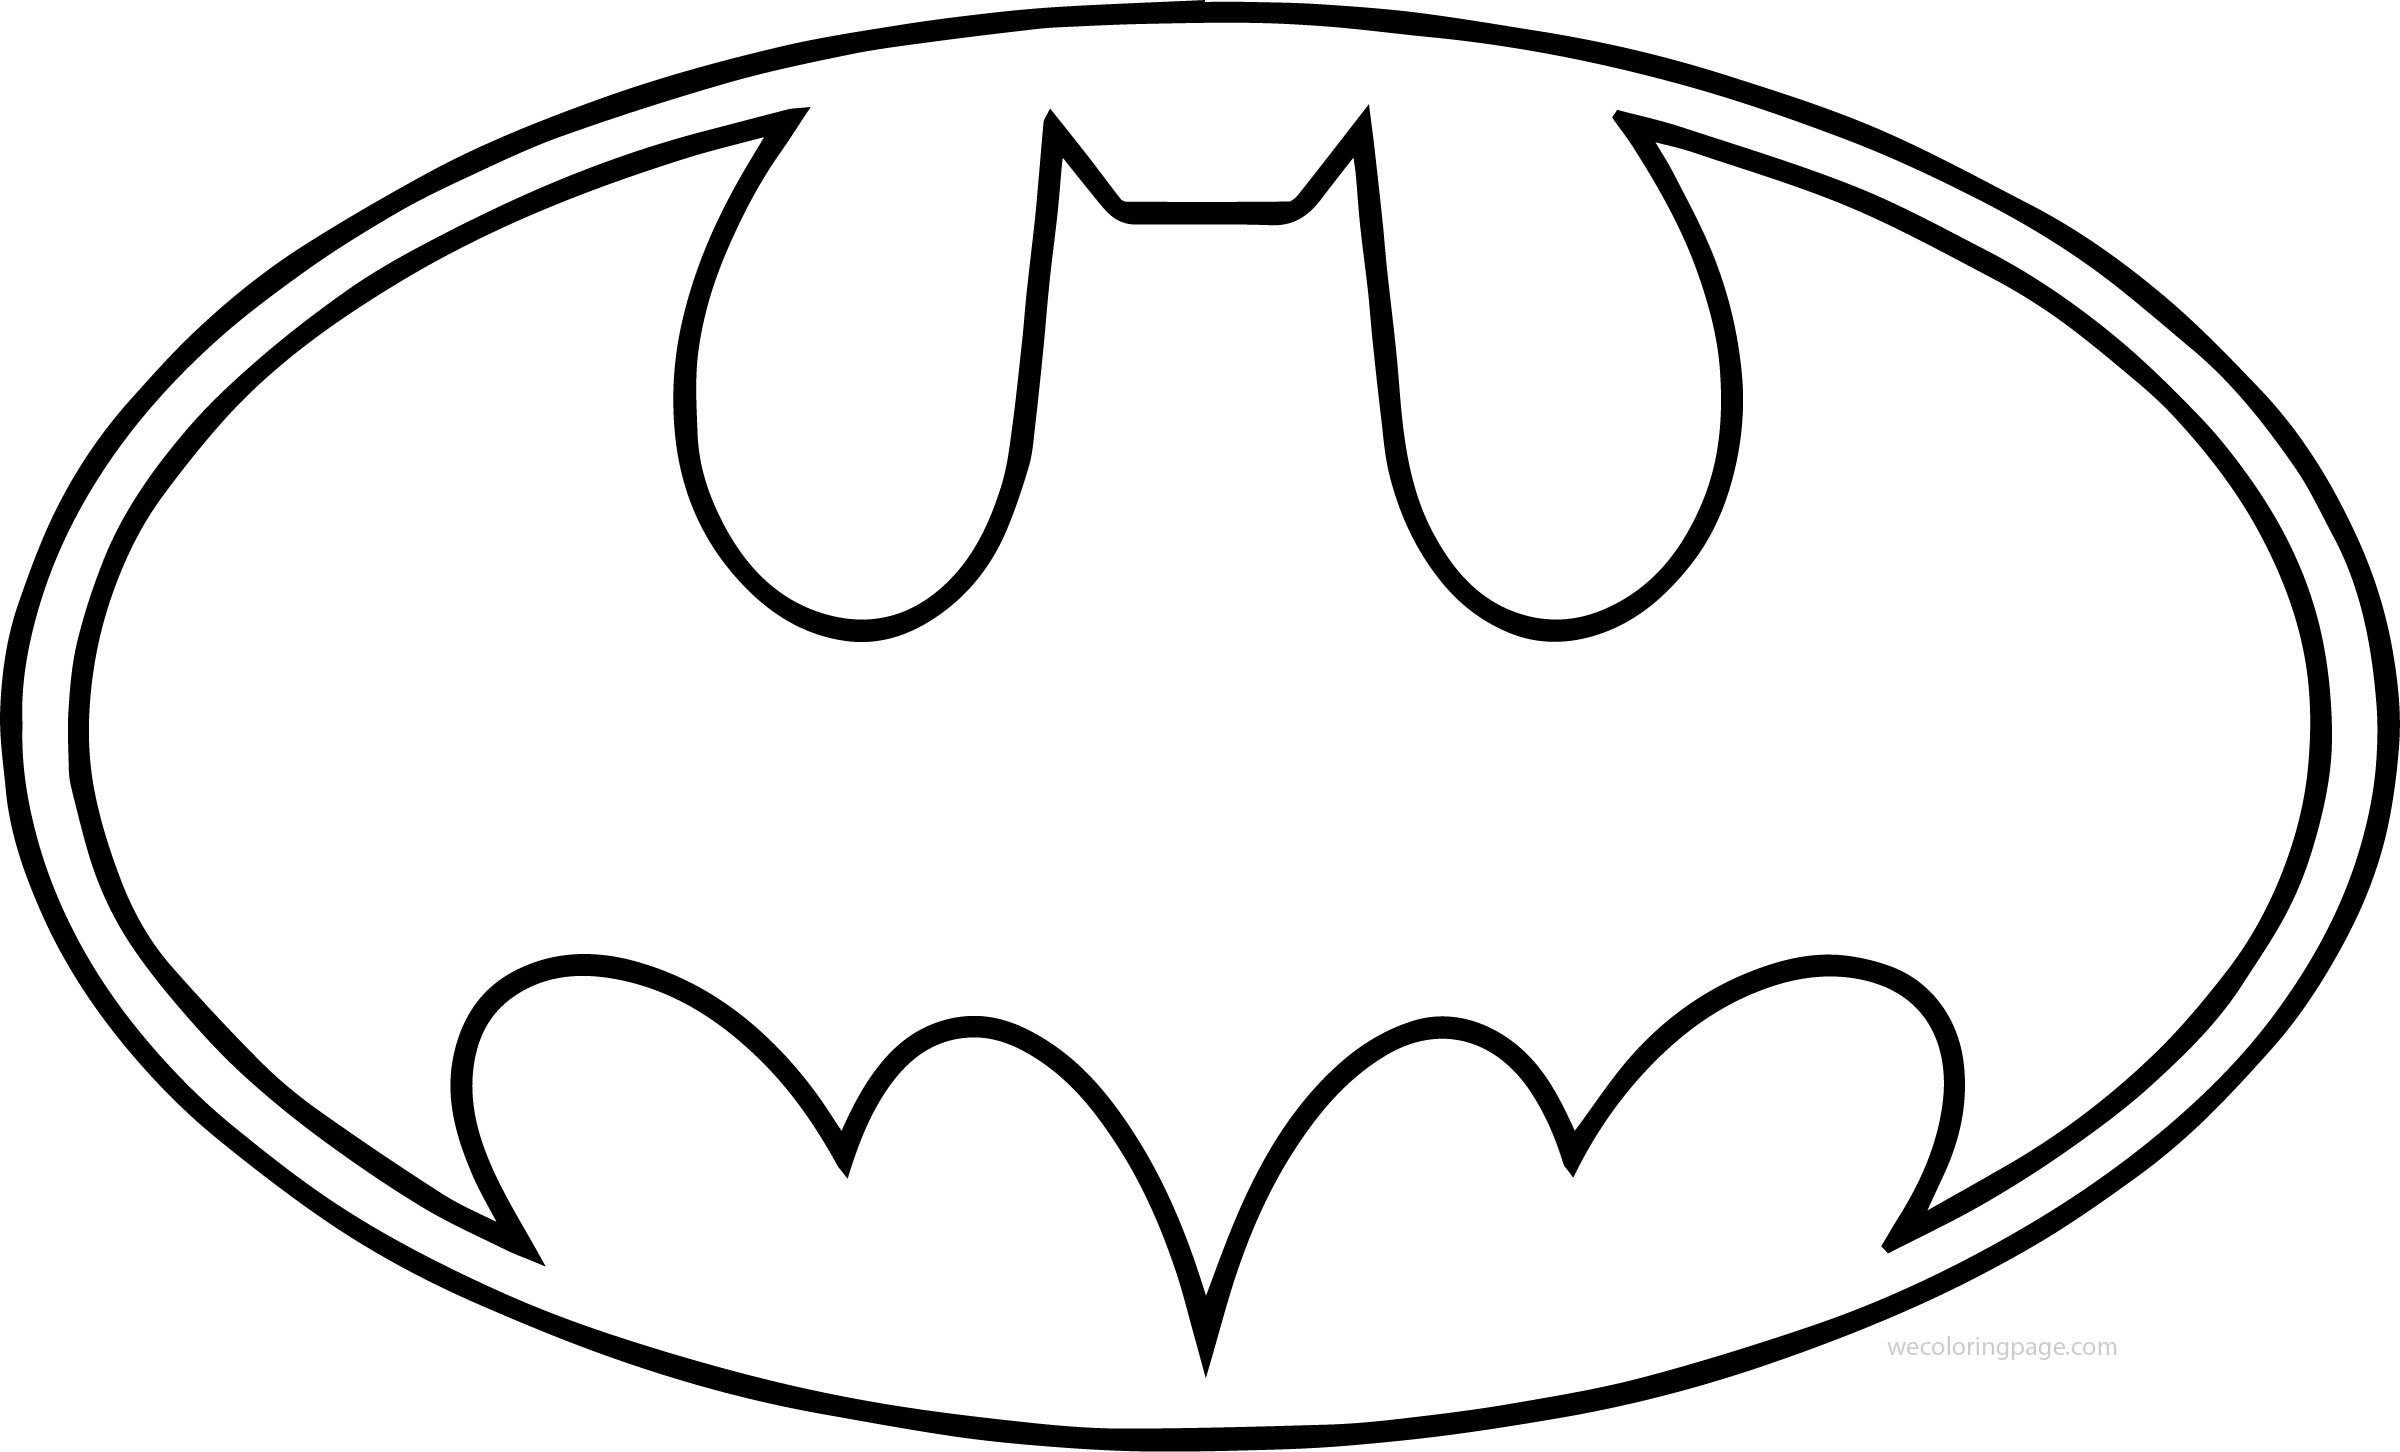 Outline-Batman-Logo-Coloring-Page